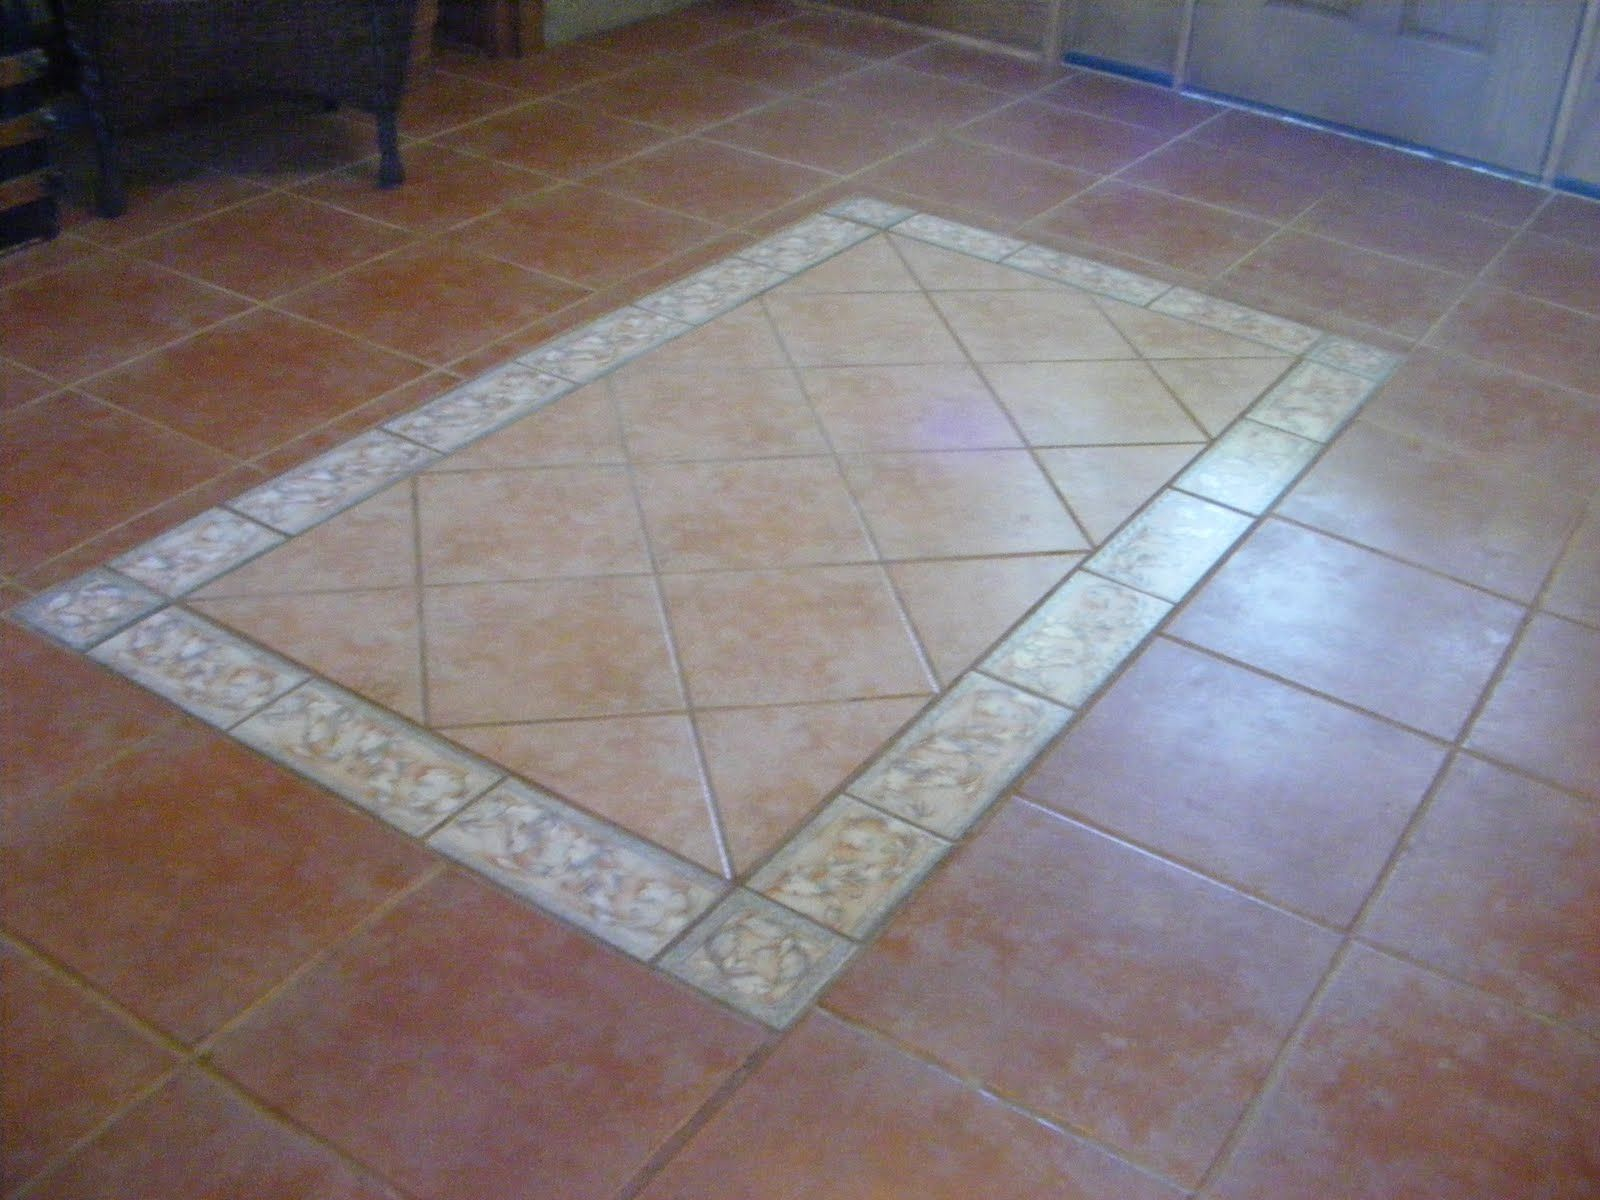 Decoration floor tile design patterns of new inspiration for new home interior floors Home tile design ideas